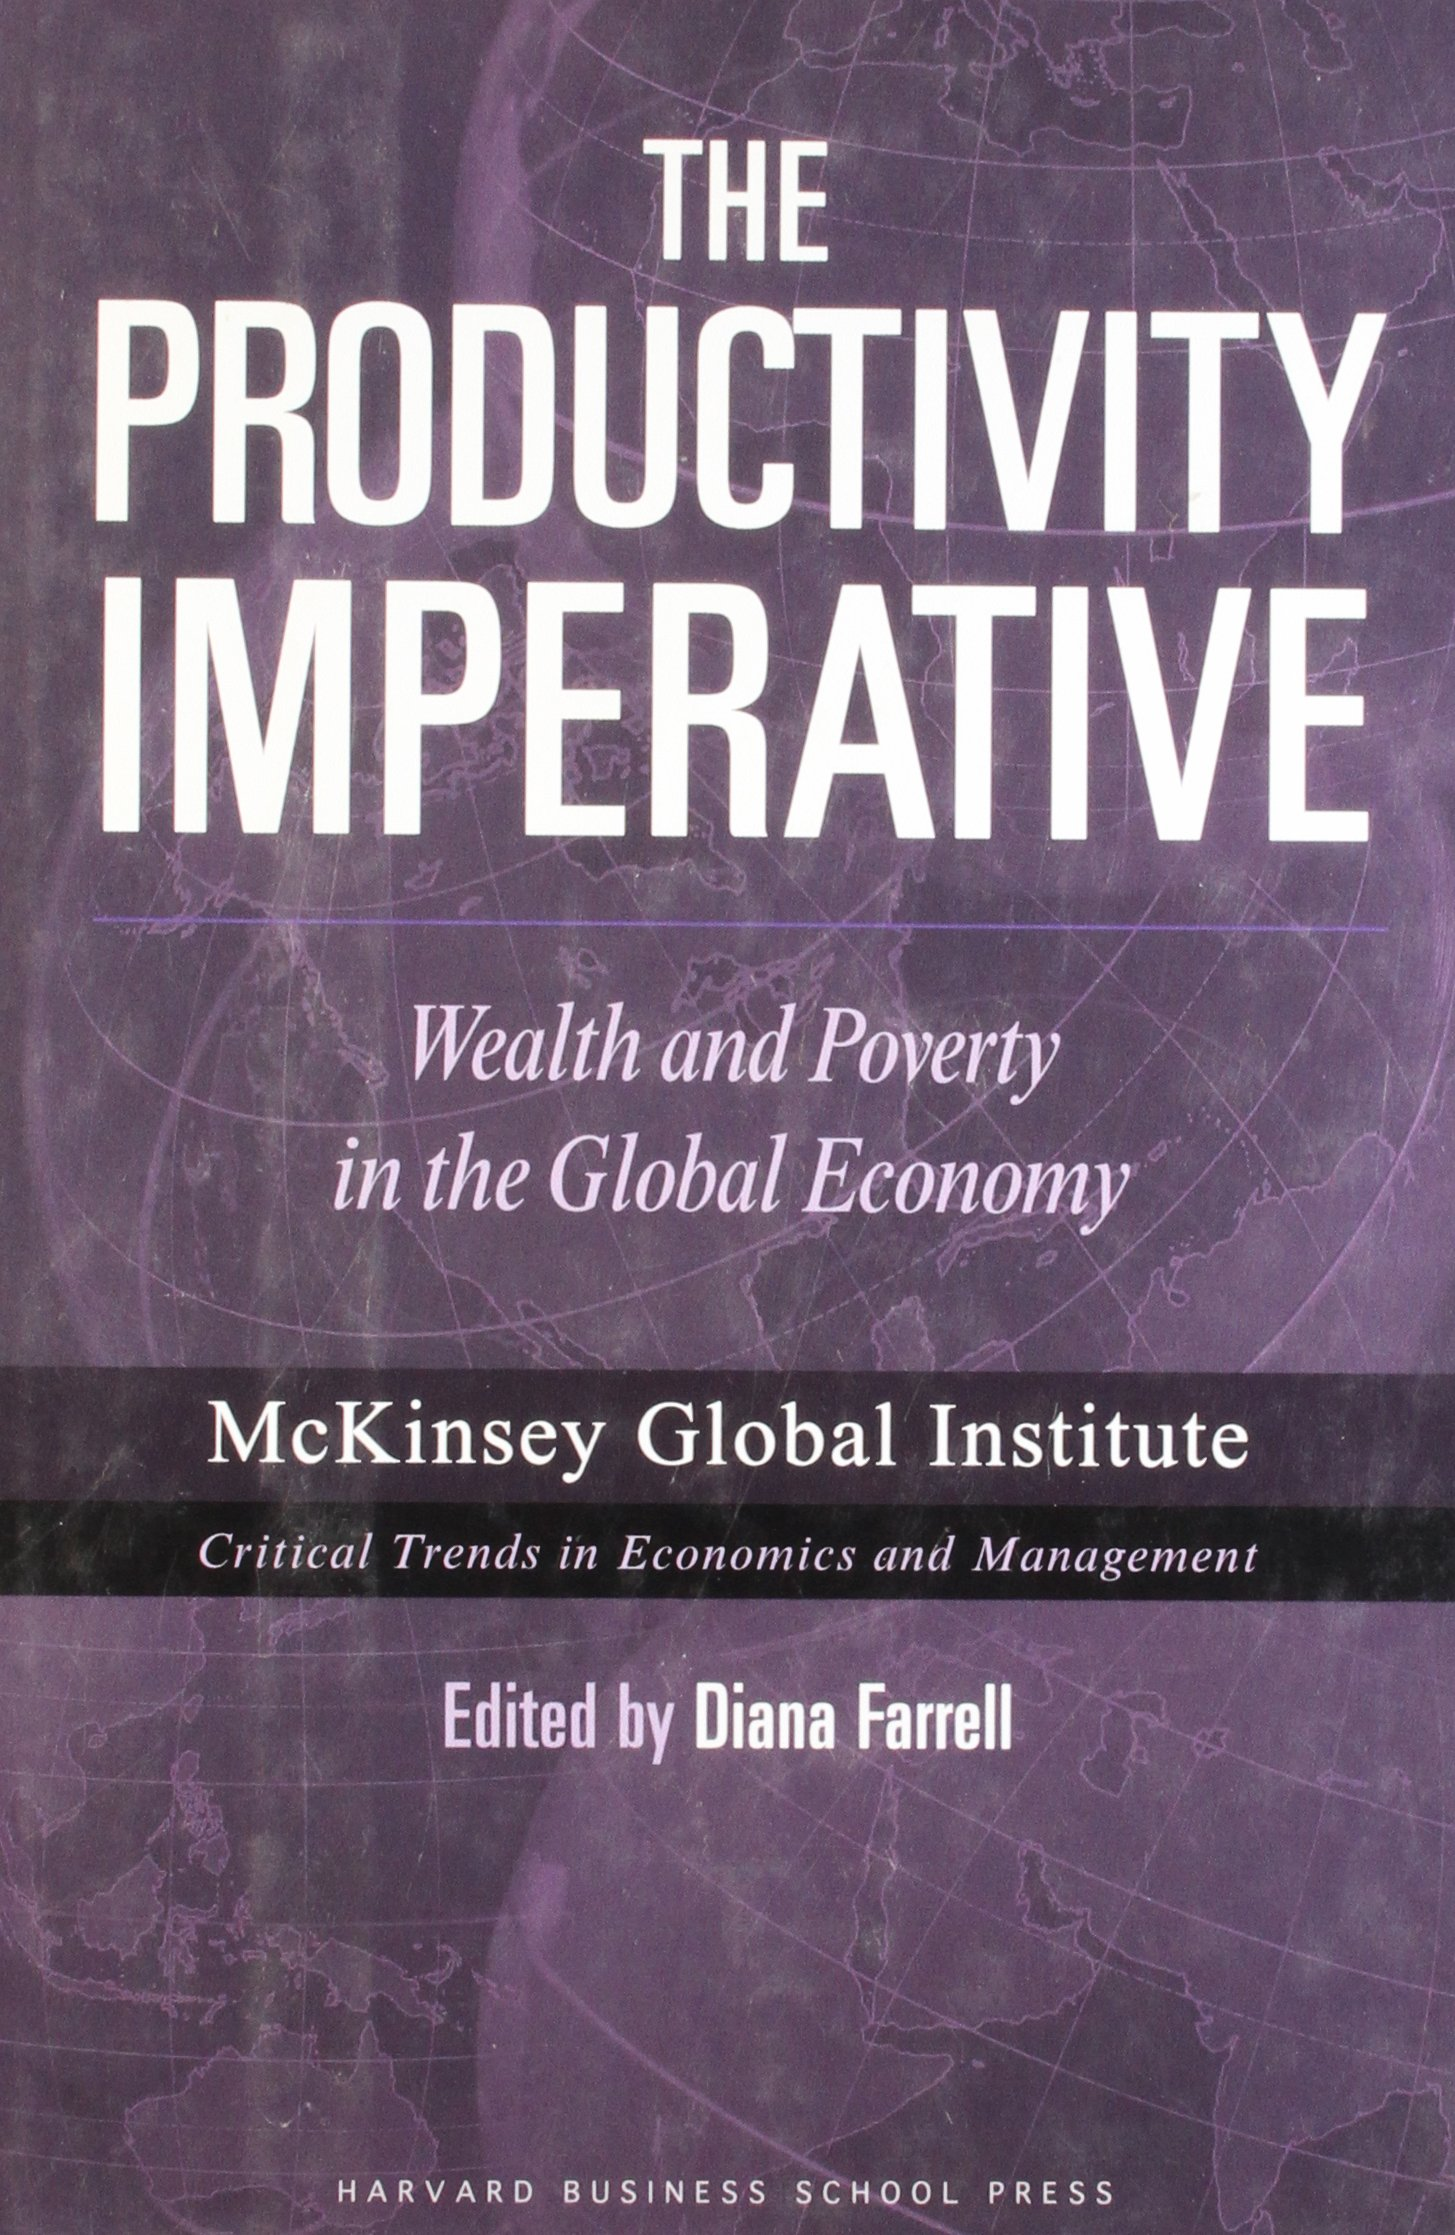 The Productivity Imperative: Wealth And Poverty in the